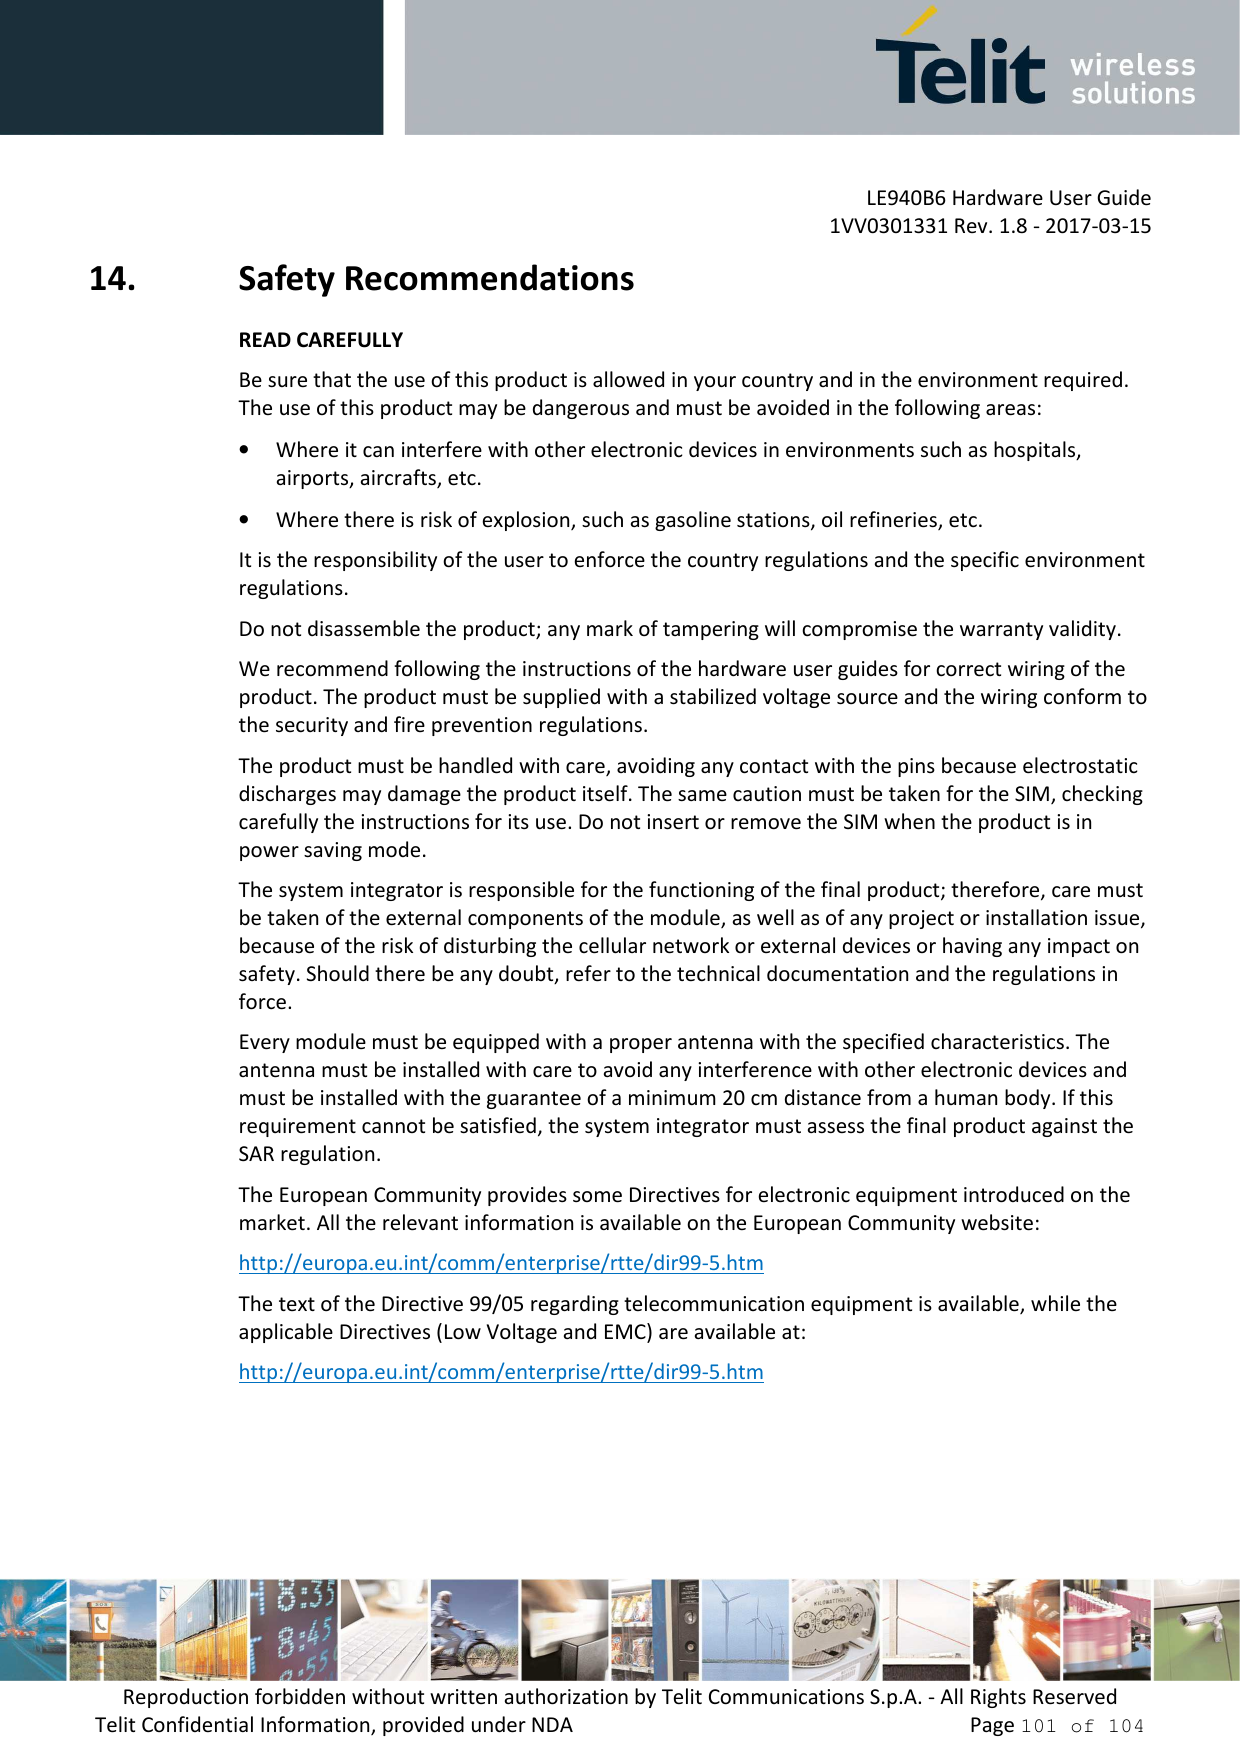 LE940B6 Hardware User Guide     1VV0301331 Rev. 1.8 - 2017-03-15 Reproduction forbidden without written authorization by Telit Communications S.p.A. - All Rights Reserved Telit Confidential Information, provided under NDA                 Page 101 of 104 14. Safety Recommendations READ CAREFULLY Be sure that the use of this product is allowed in your country and in the environment required. The use of this product may be dangerous and must be avoided in the following areas: • Where it can interfere with other electronic devices in environments such as hospitals, airports, aircrafts, etc. • Where there is risk of explosion, such as gasoline stations, oil refineries, etc.  It is the responsibility of the user to enforce the country regulations and the specific environment regulations. Do not disassemble the product; any mark of tampering will compromise the warranty validity. We recommend following the instructions of the hardware user guides for correct wiring of the product. The product must be supplied with a stabilized voltage source and the wiring conform to the security and fire prevention regulations. The product must be handled with care, avoiding any contact with the pins because electrostatic discharges may damage the product itself. The same caution must be taken for the SIM, checking carefully the instructions for its use. Do not insert or remove the SIM when the product is in power saving mode. The system integrator is responsible for the functioning of the final product; therefore, care must be taken of the external components of the module, as well as of any project or installation issue, because of the risk of disturbing the cellular network or external devices or having any impact on safety. Should there be any doubt, refer to the technical documentation and the regulations in force. Every module must be equipped with a proper antenna with the specified characteristics. The antenna must be installed with care to avoid any interference with other electr